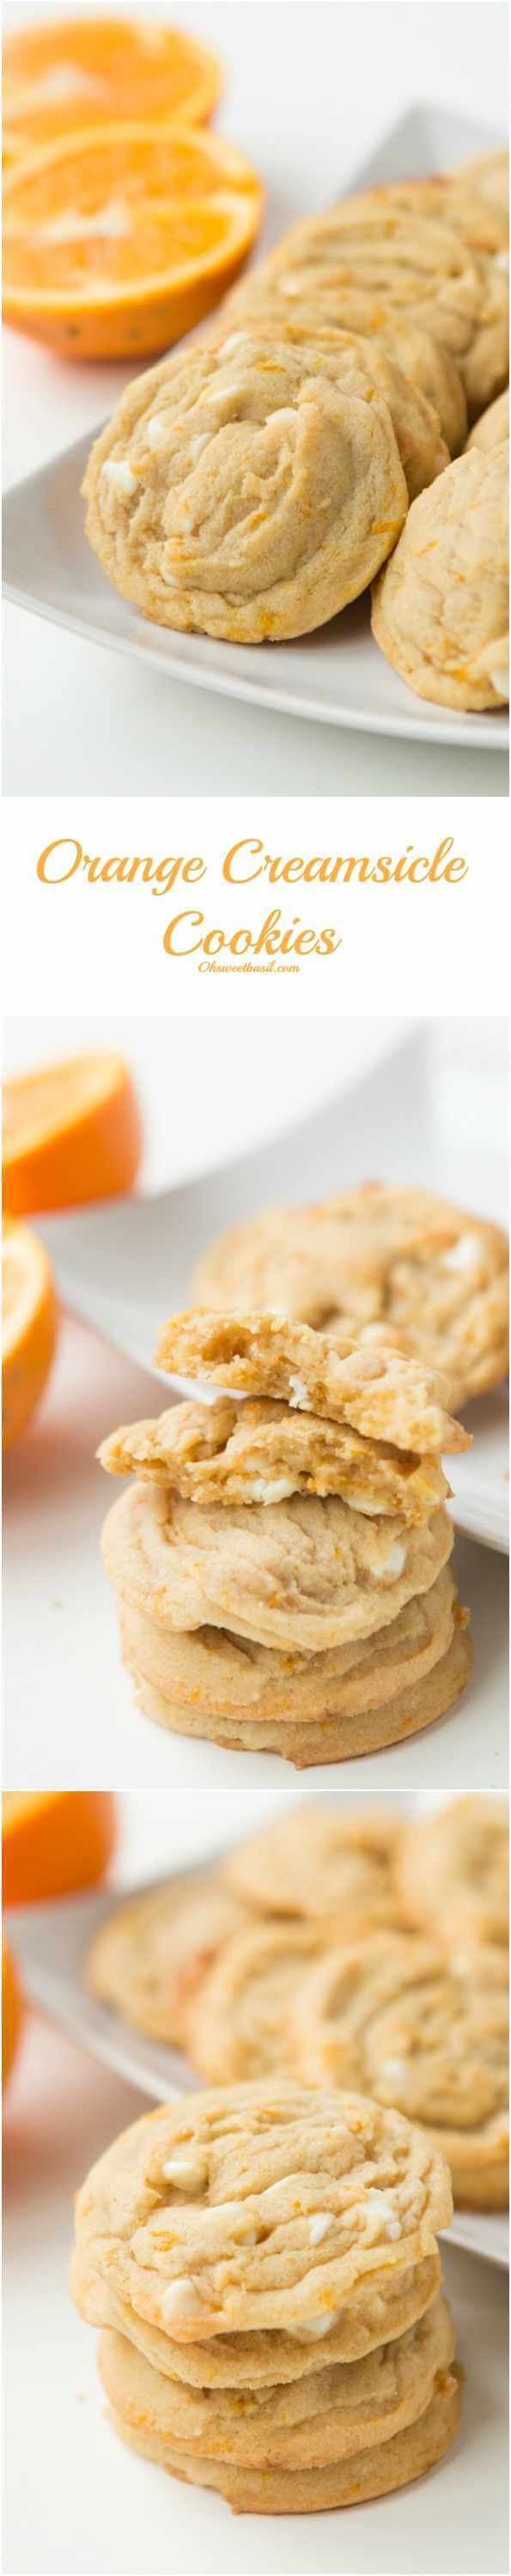 These taste just like our favorite creamsicle popsicles! Orange Creamsicle Cookies! ohsweetbasil.com